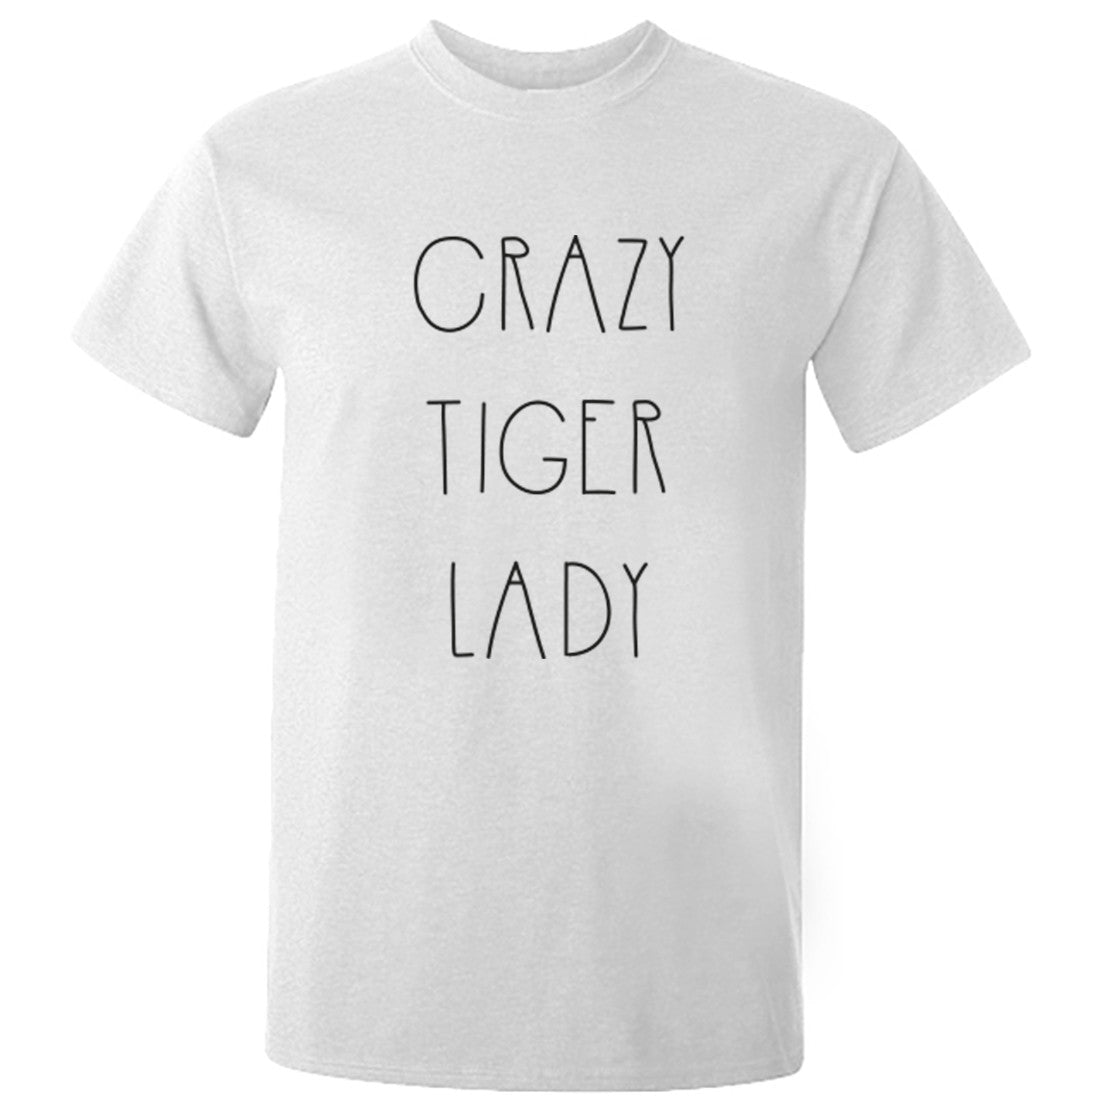 Crazy Tiger Lady Unisex Fit T-Shirt K0588 - Illustrated Identity Ltd.